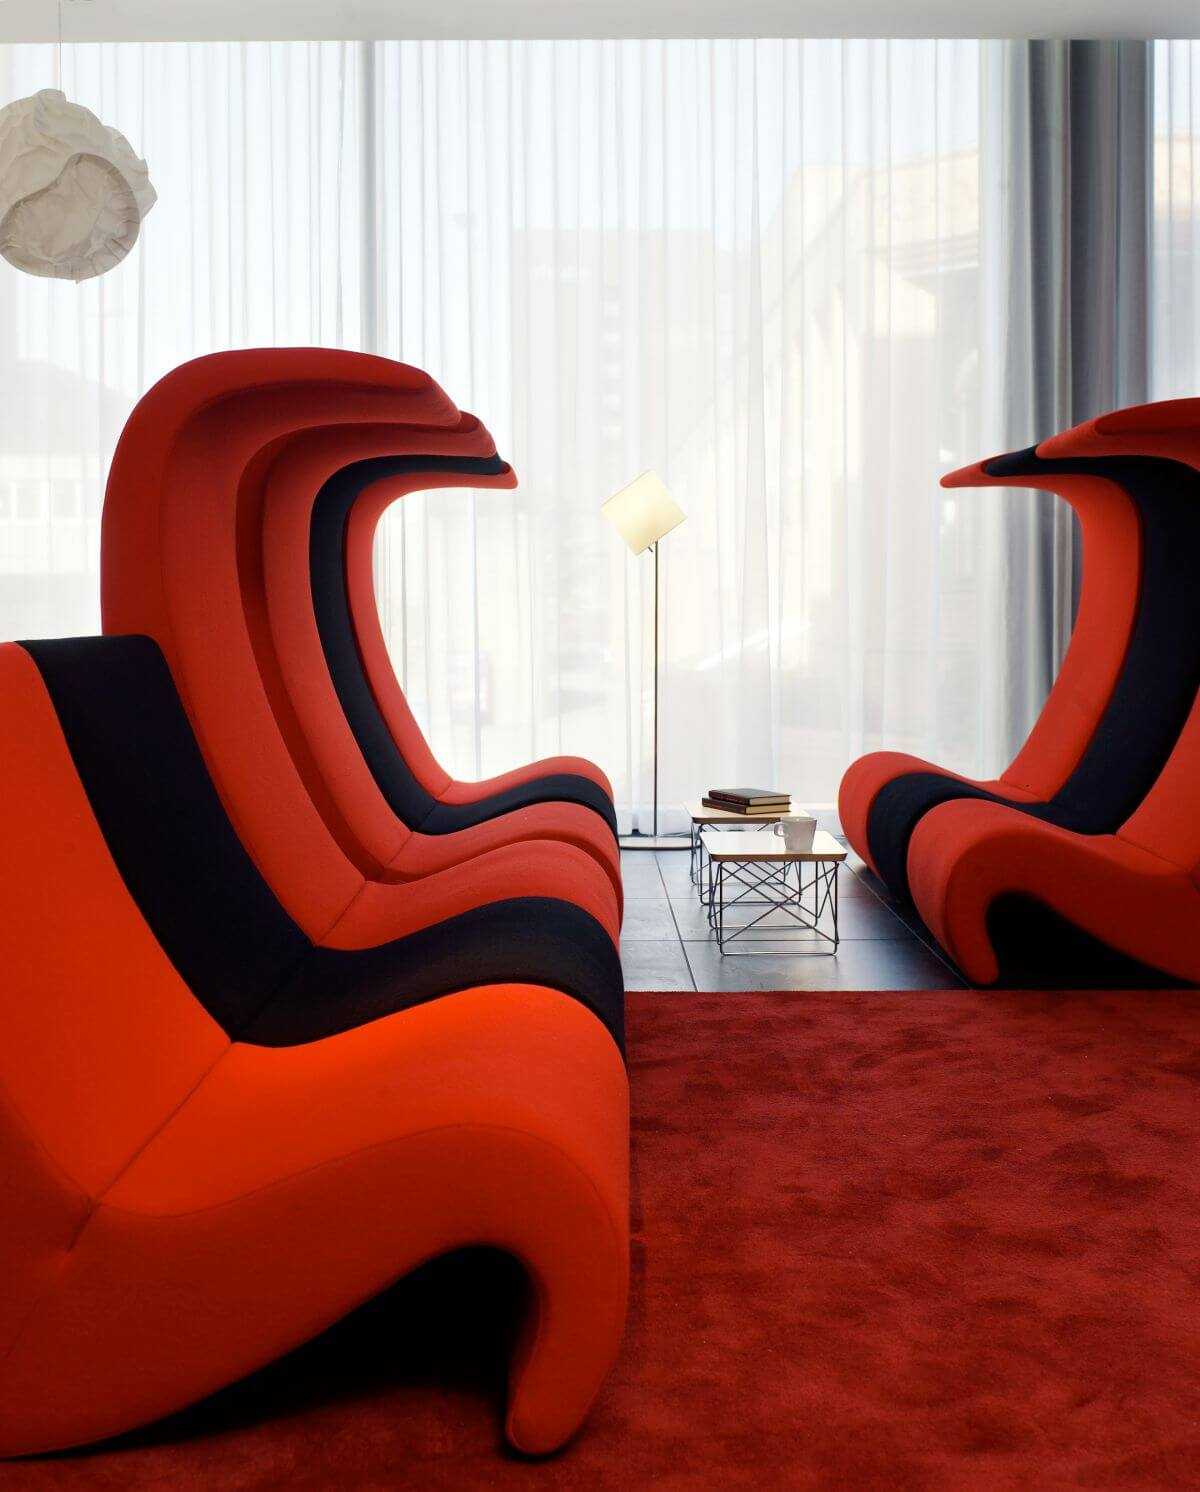 Jazzed up chairs that will leave your guests speachless